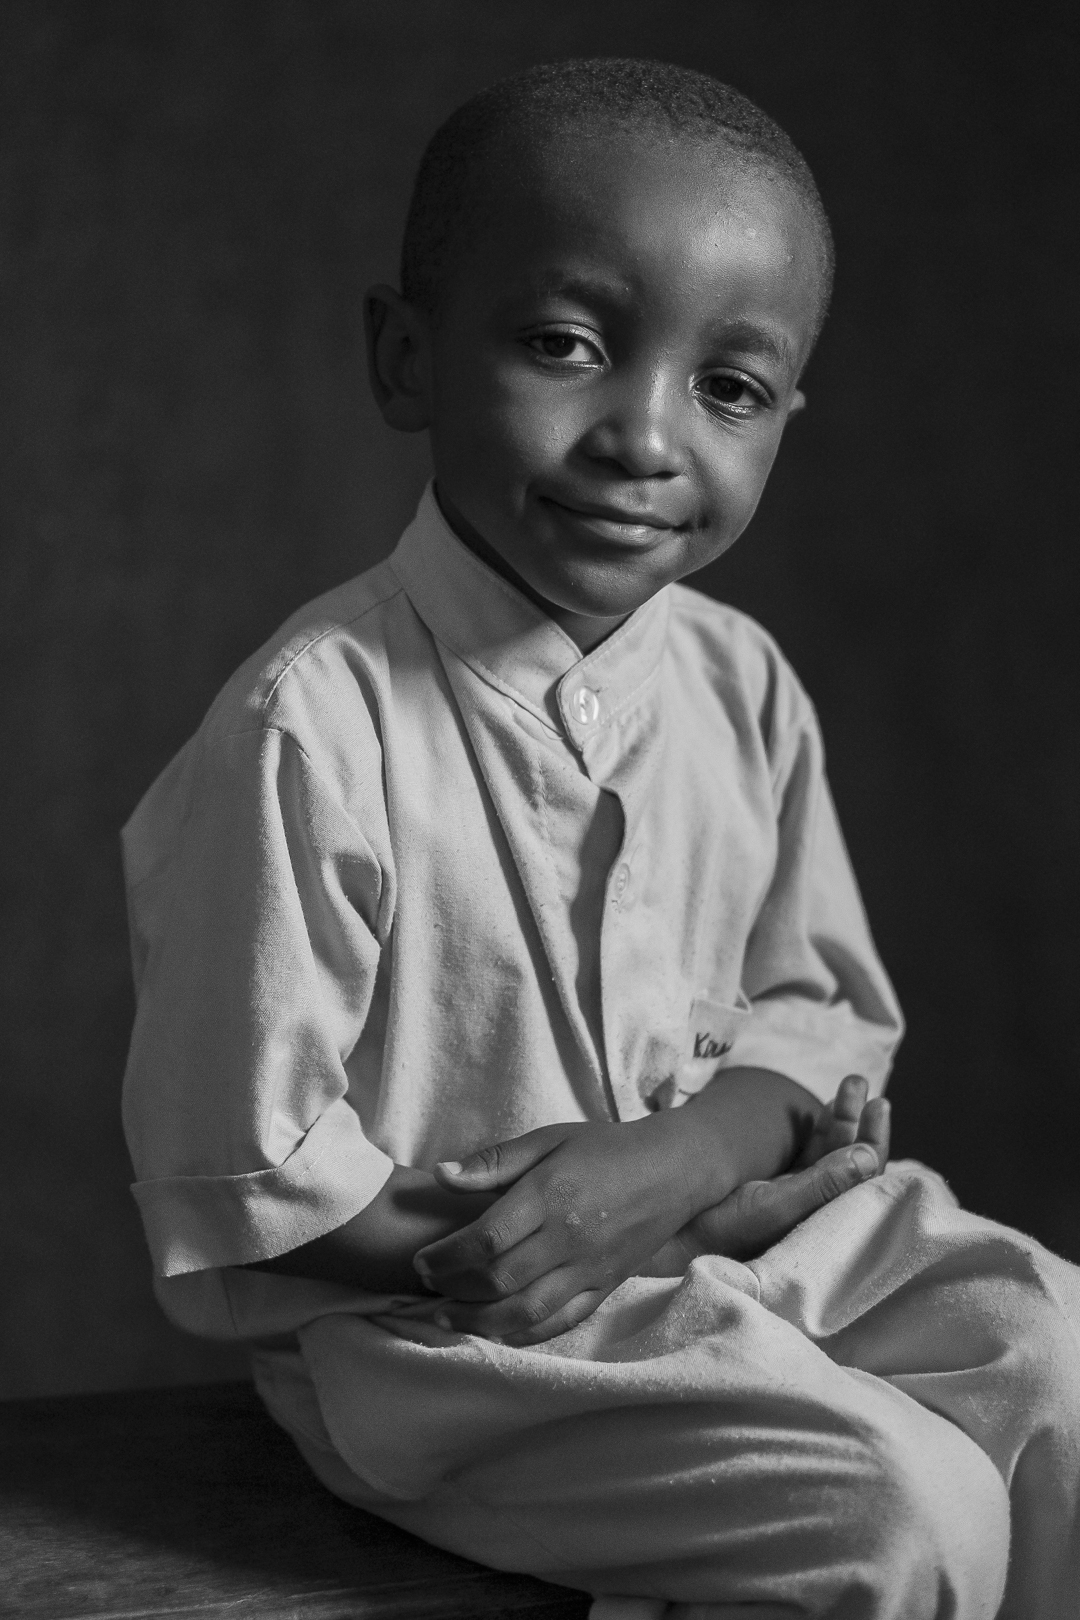 Mael | 5 years old